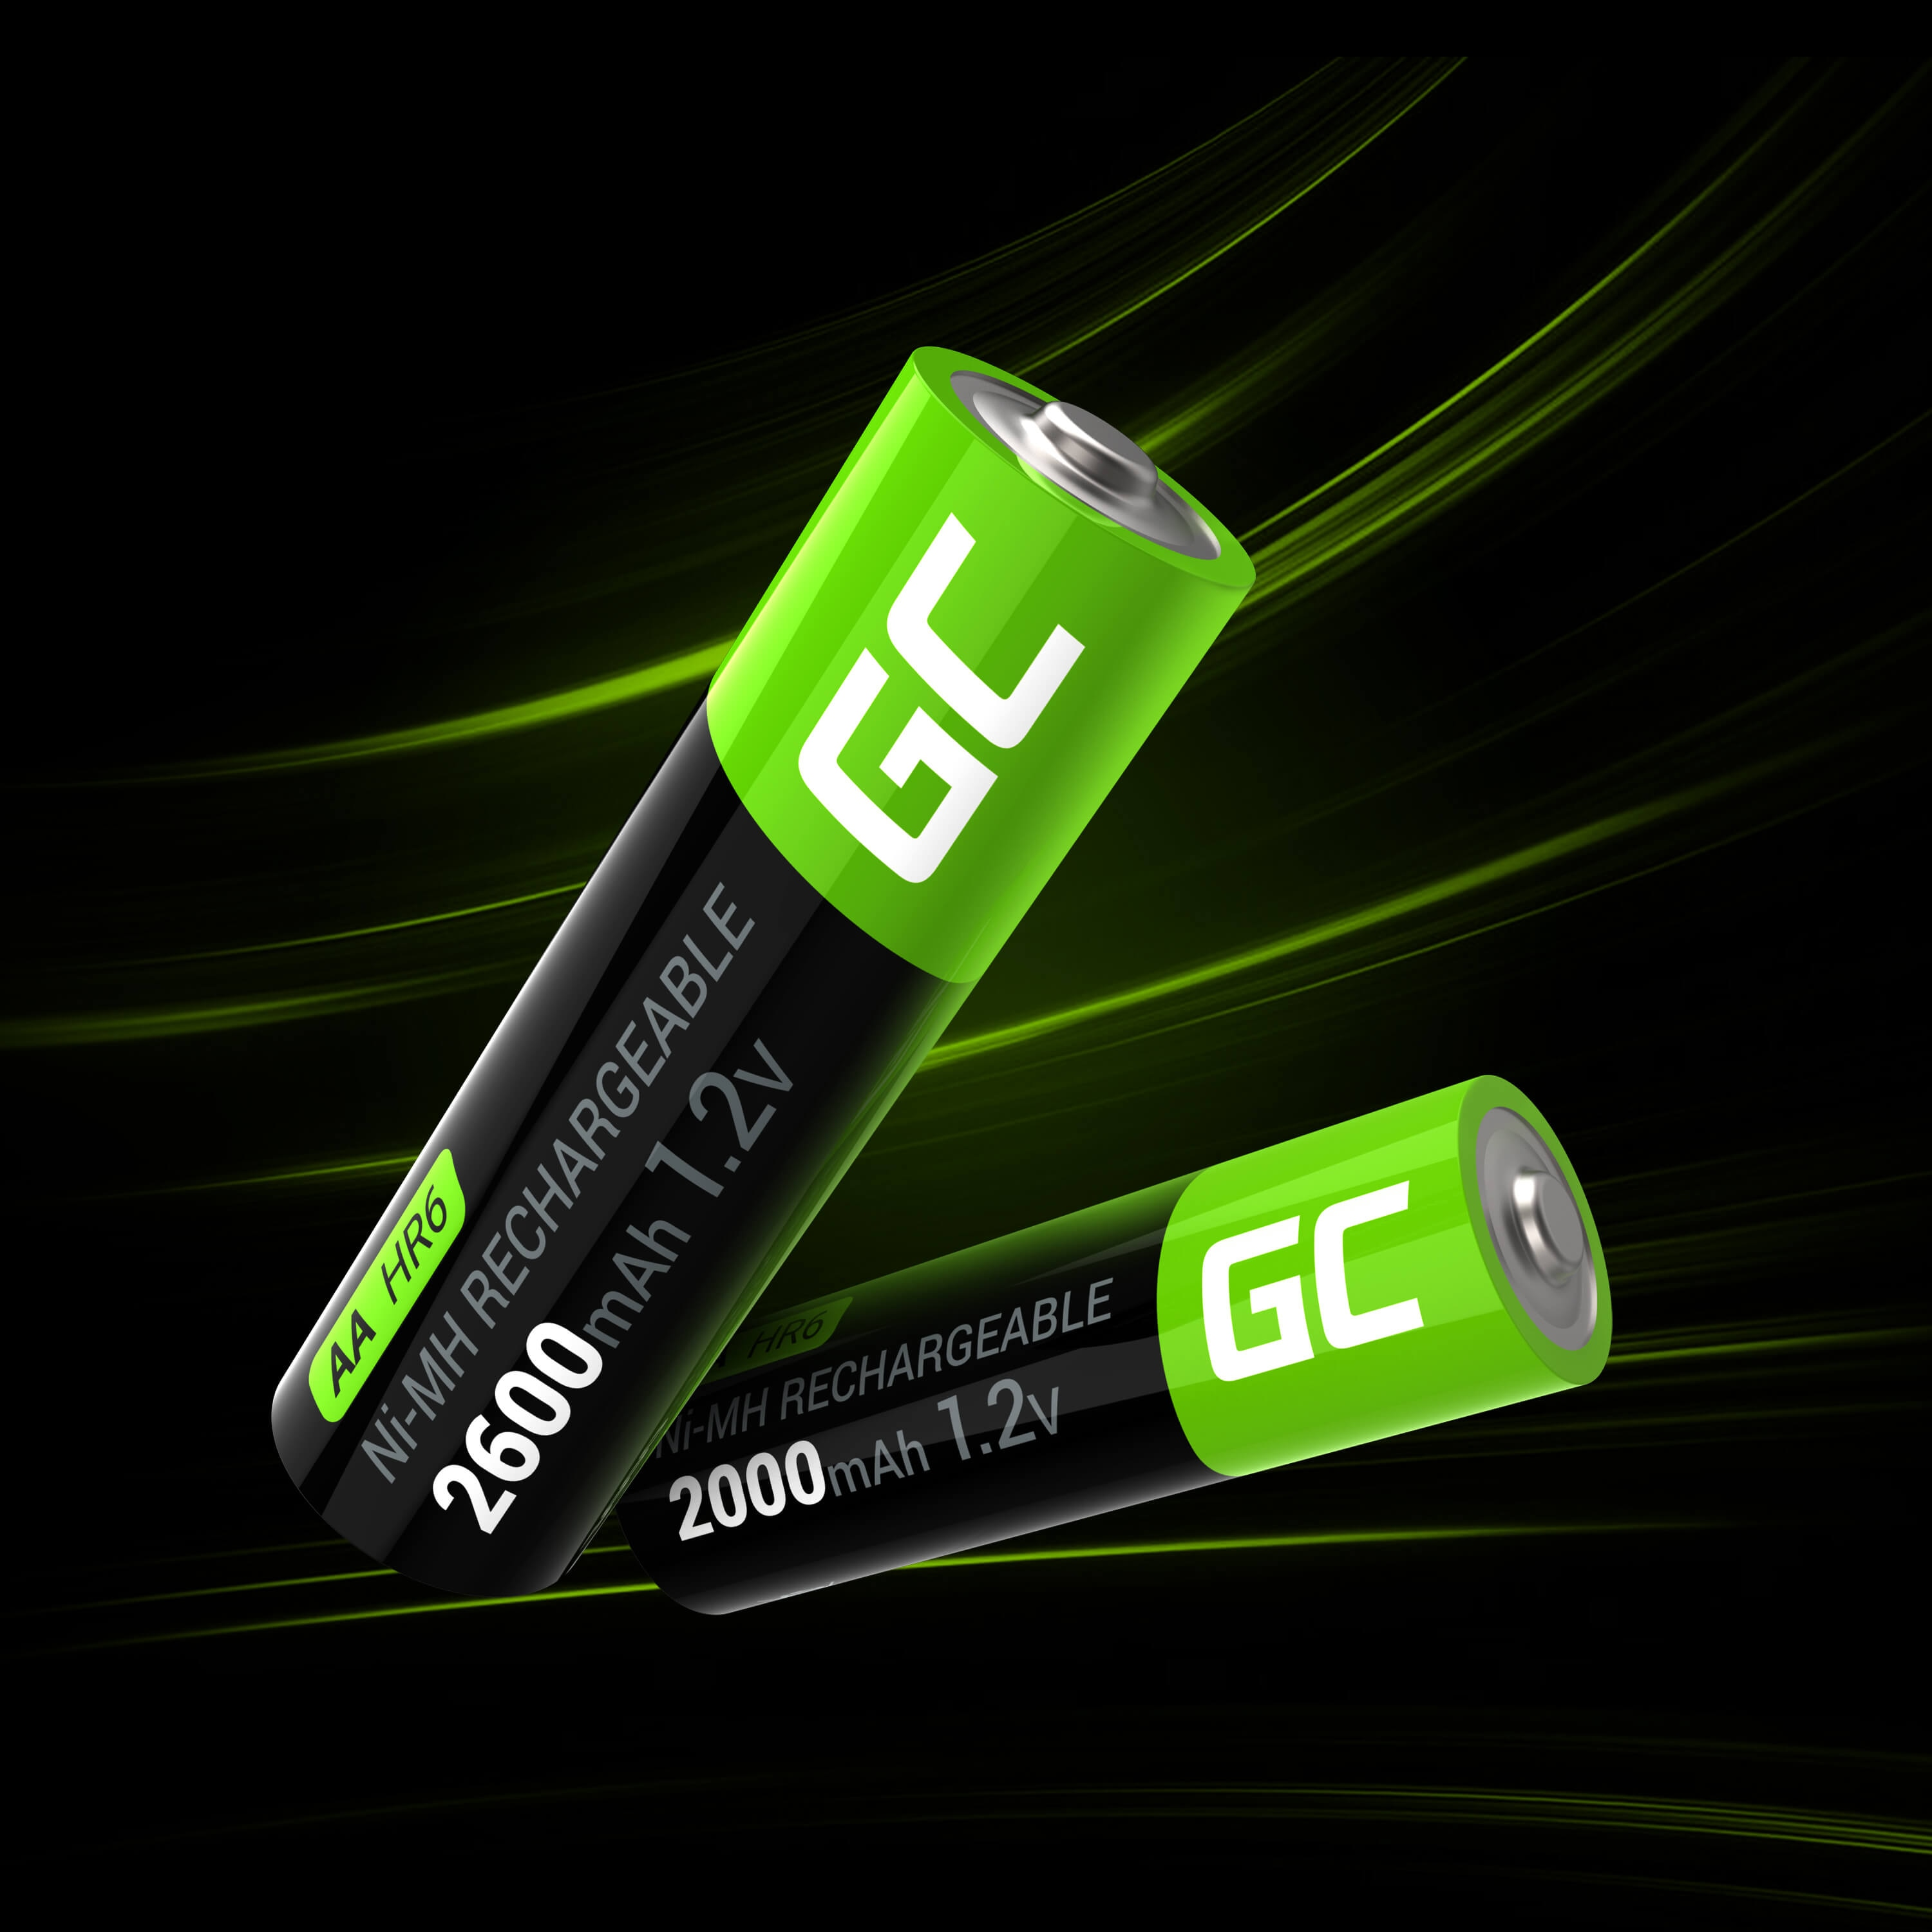 GC® 2x AAA rechargeable batteries HR03 800mAh Green Cell - 8